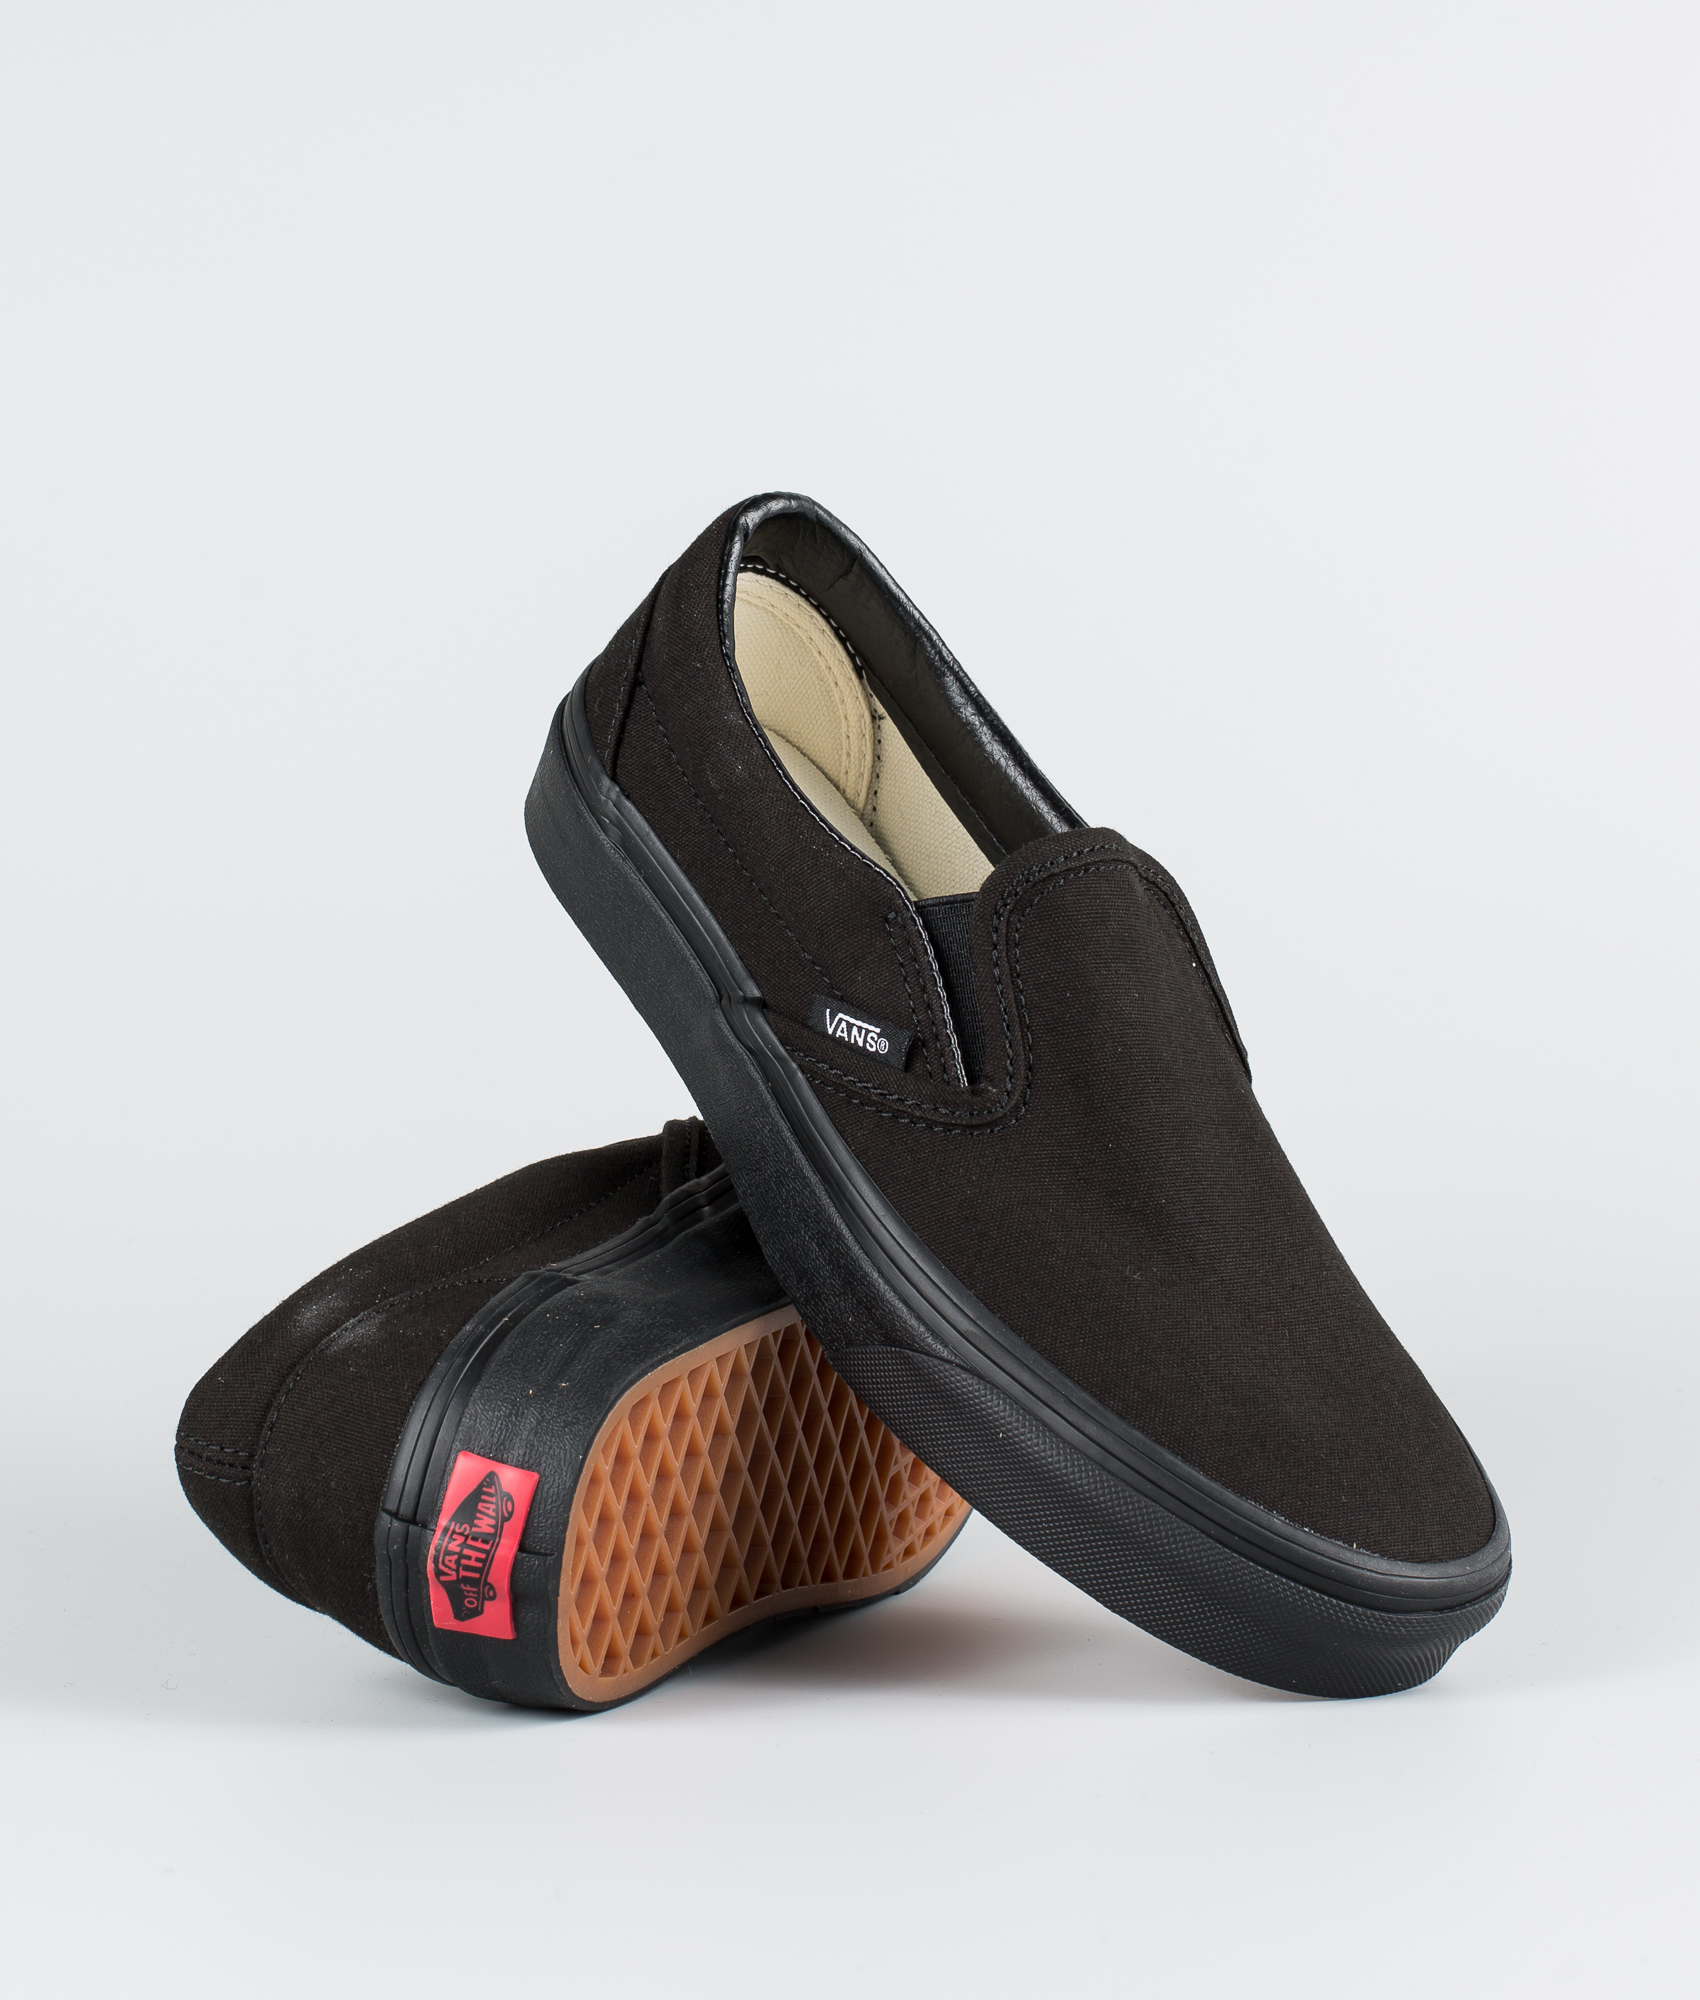 071a6a814b1f Vans Classic Slip-On Shoes Black/Black - Ridestore.com